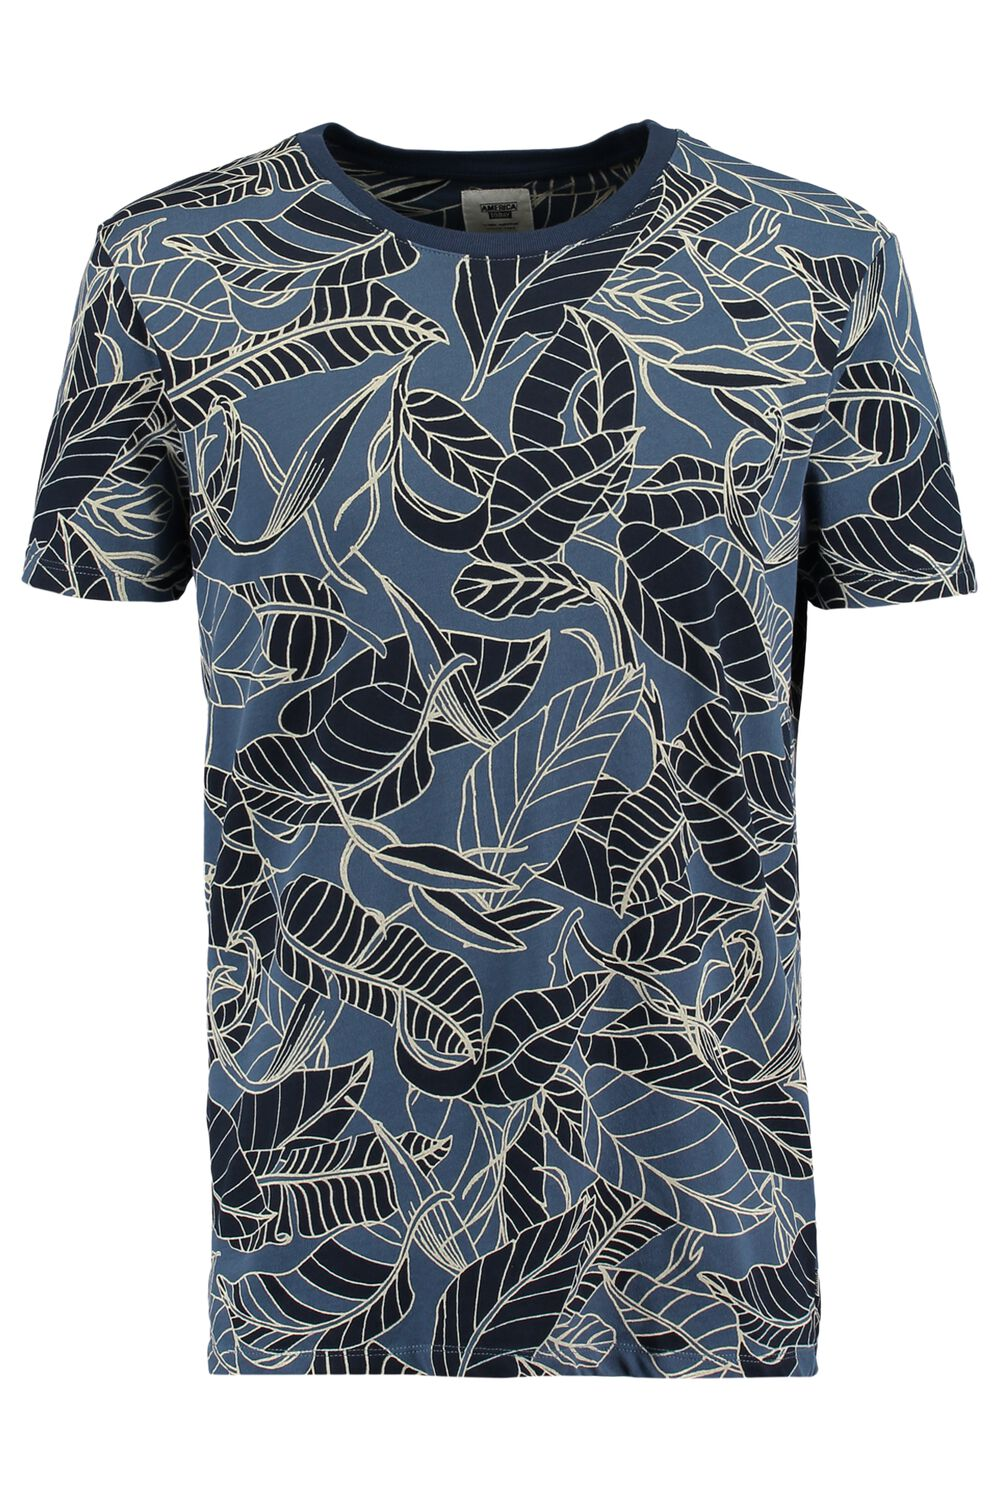 America Today Heren T-shirt Epic Leaves Blauw